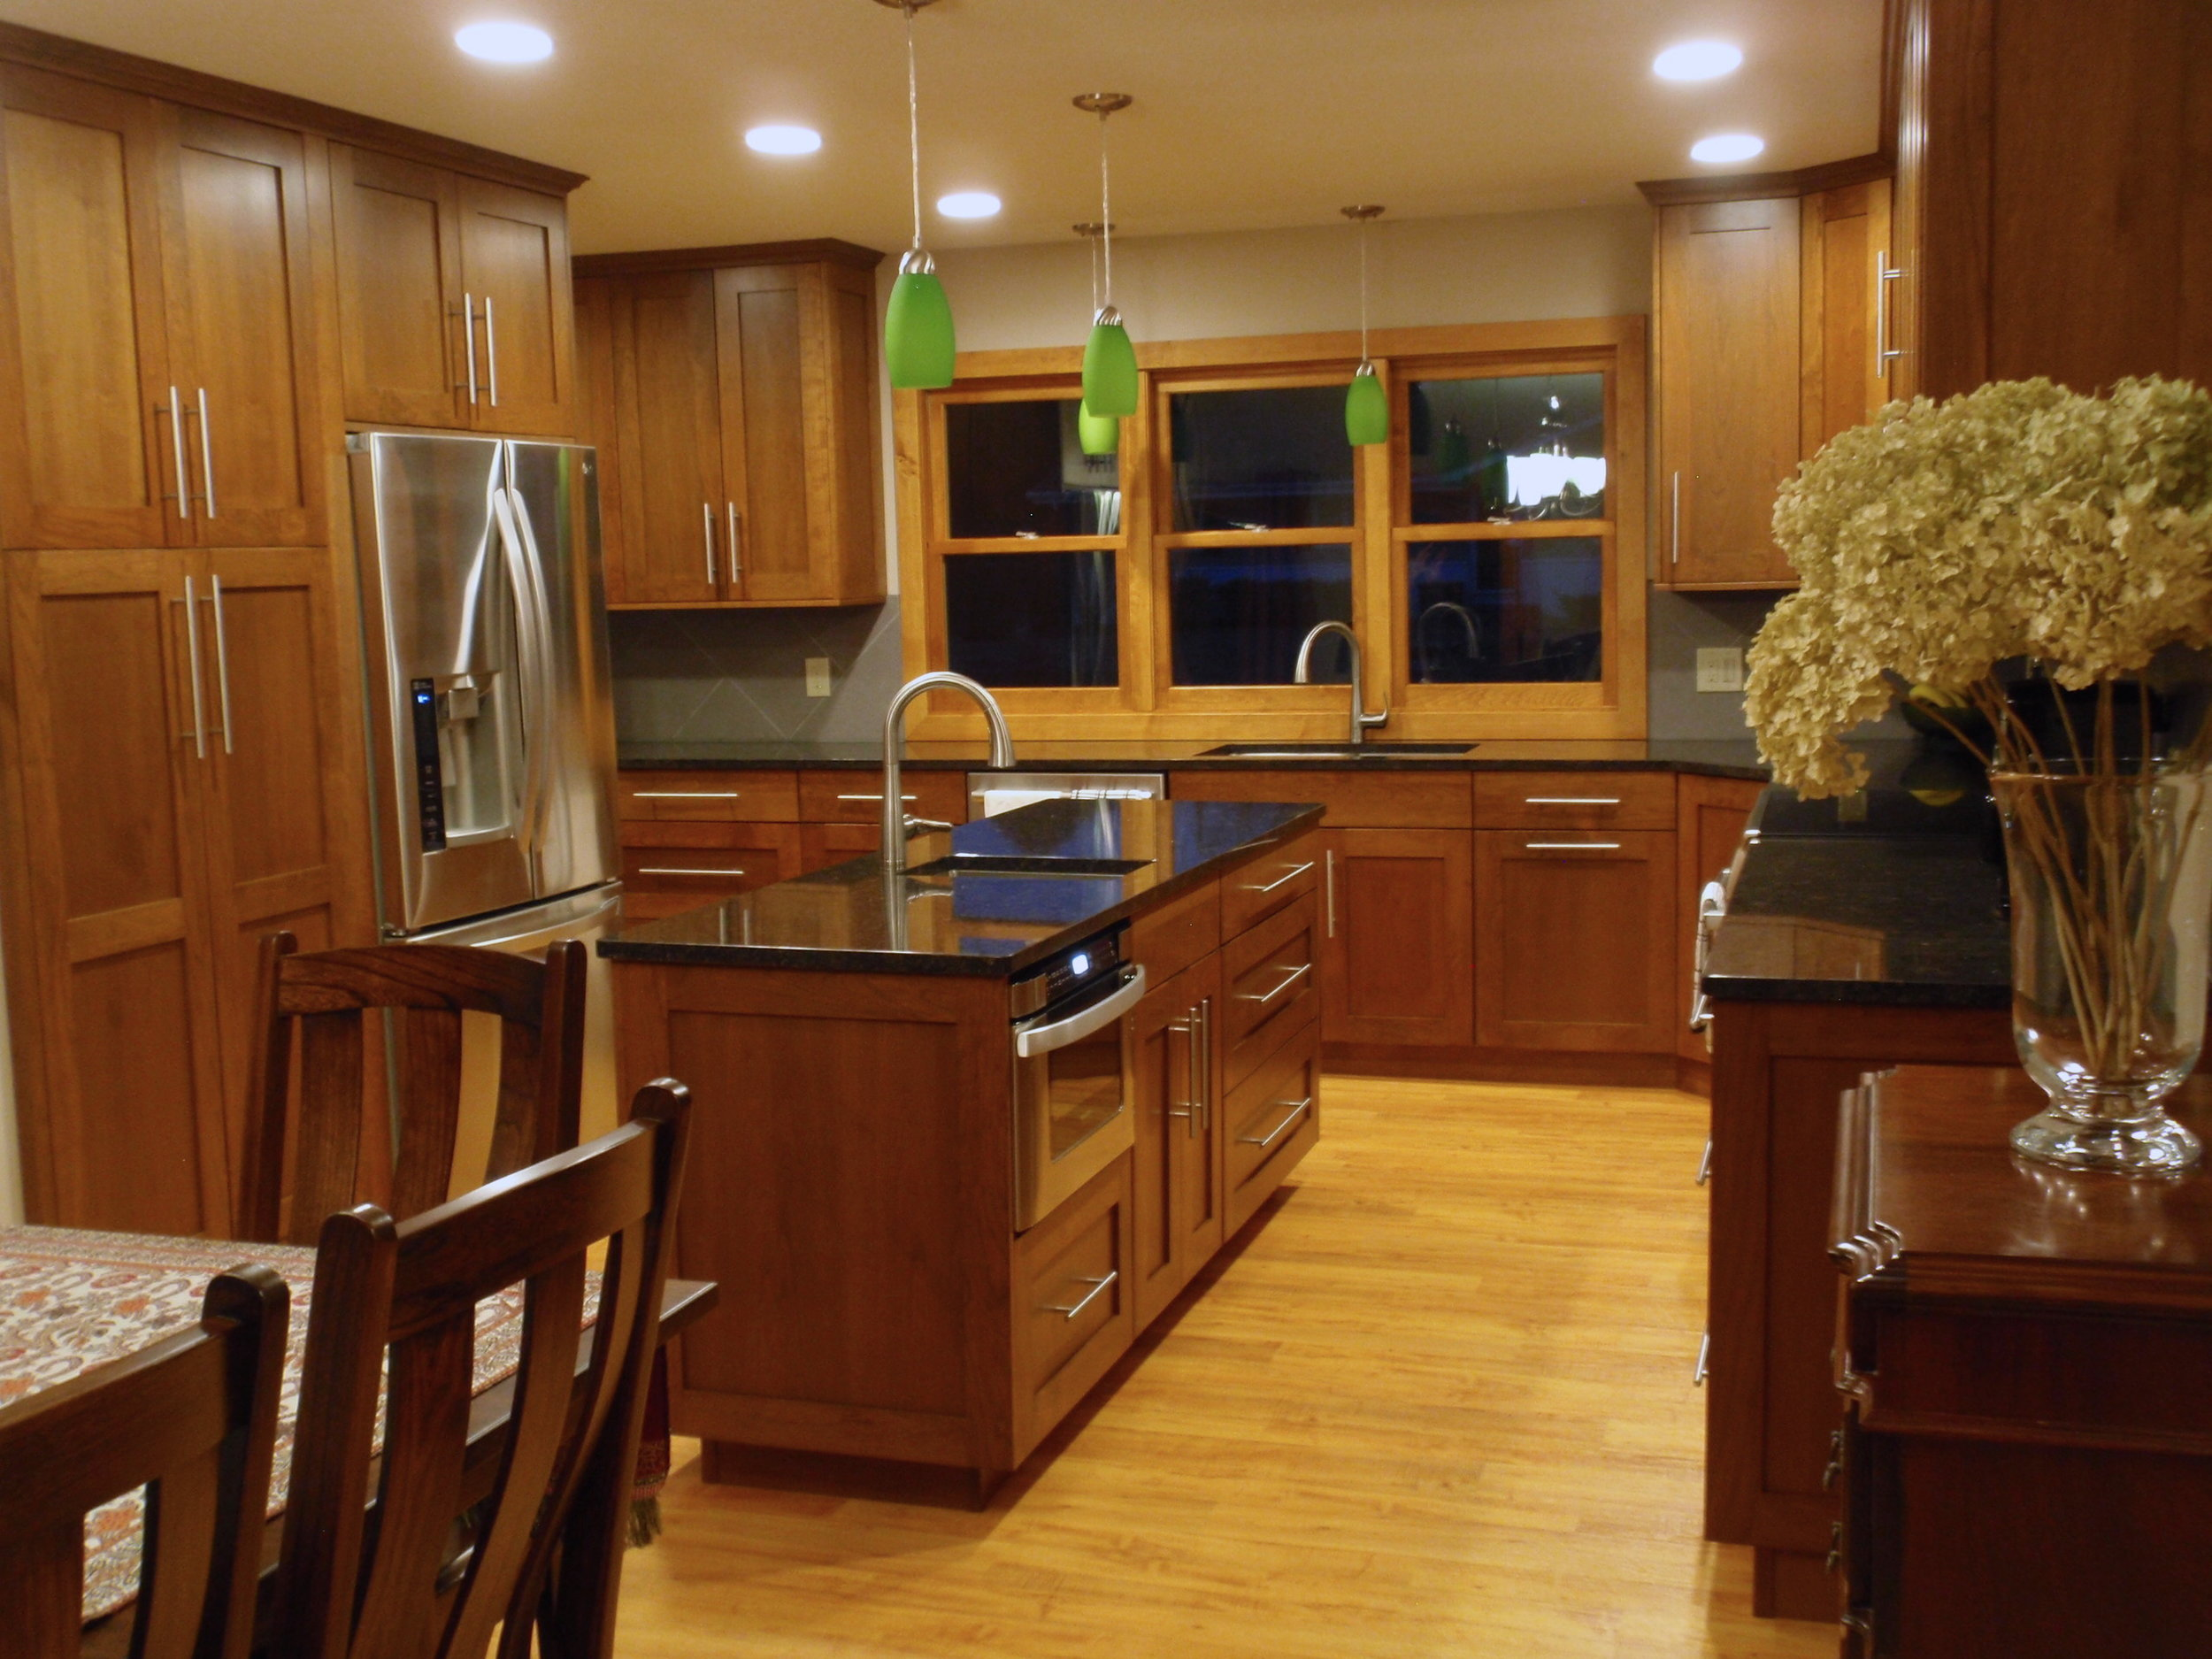 After... A Beautiful kitchen with lots of great storage and function